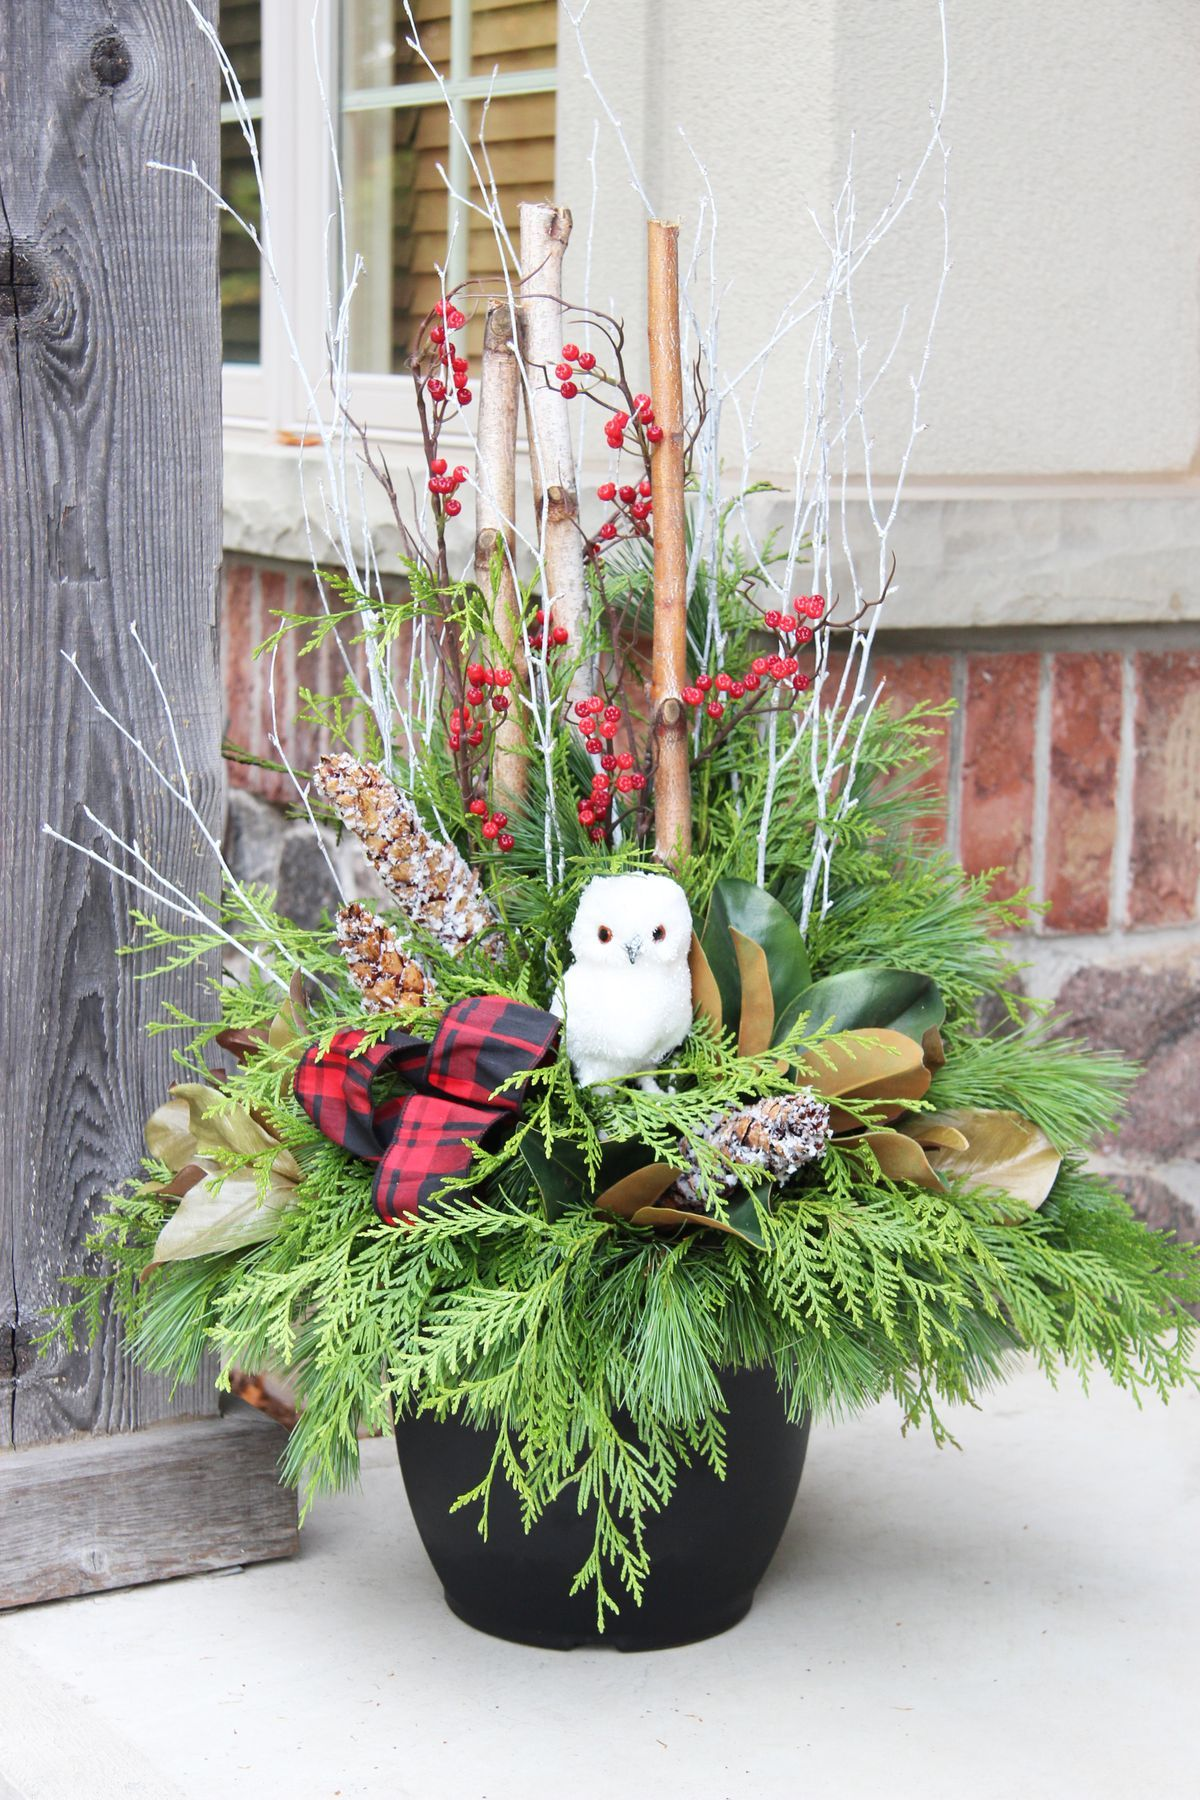 Pingl par joanna meyers sur christmas planter for Decoration exterieur hiver